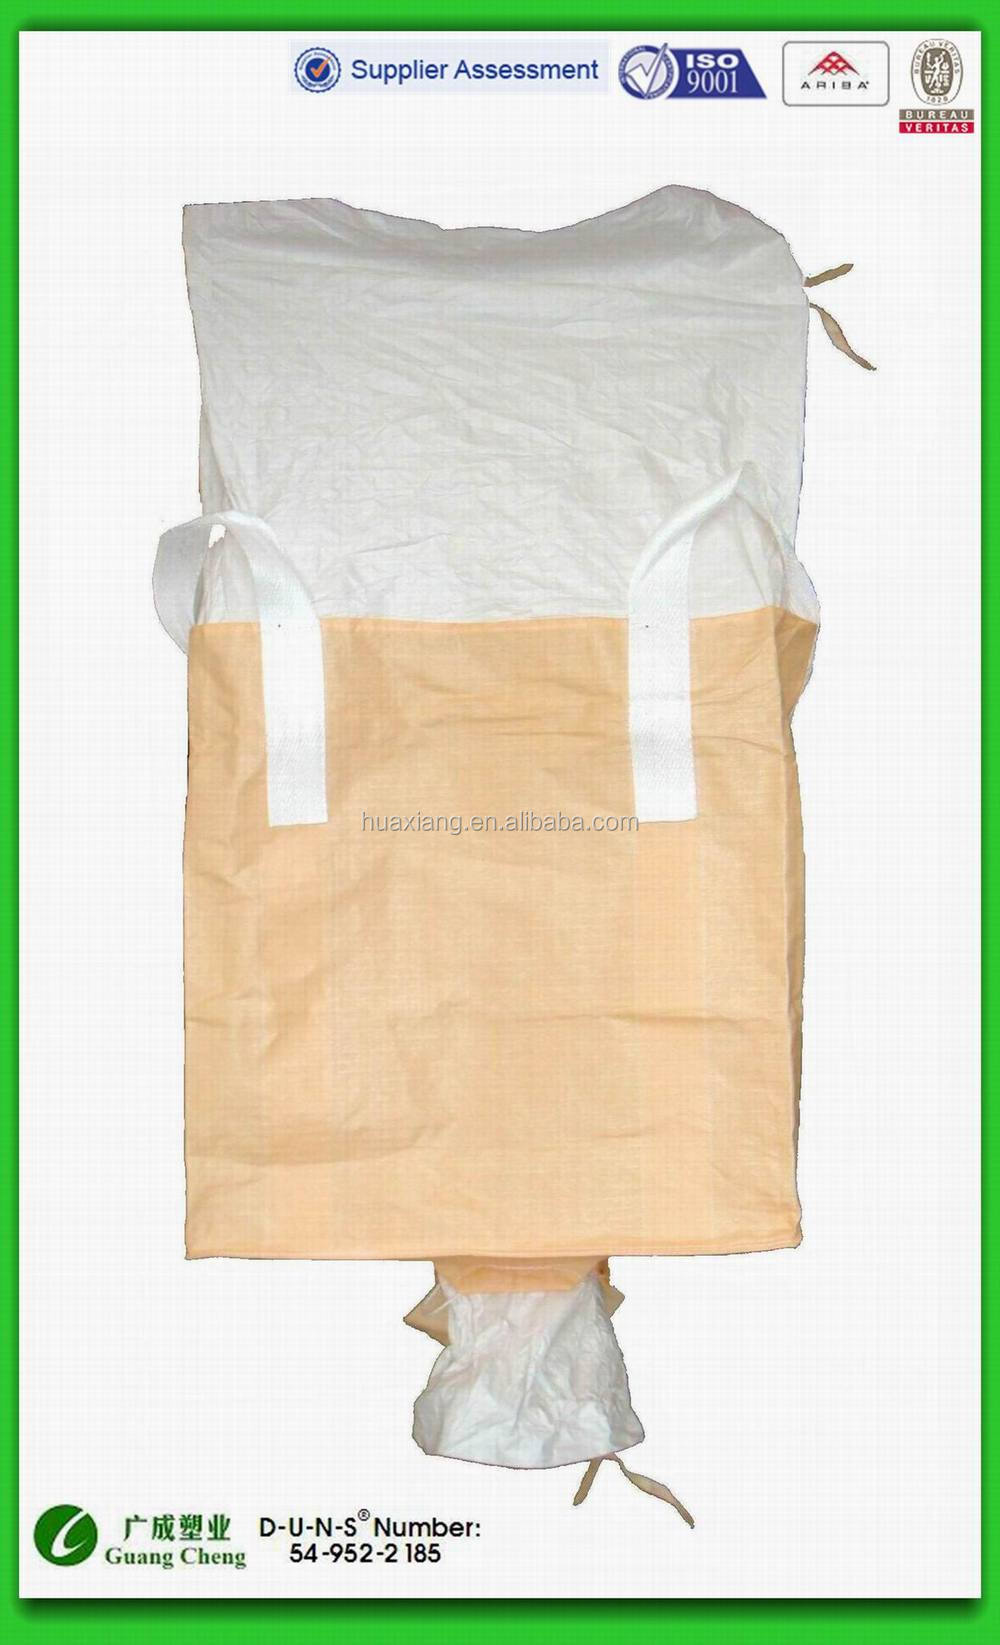 Bulk Bag with Duffle Top and Discharge Spout Valve One time used FIBC Big gc01